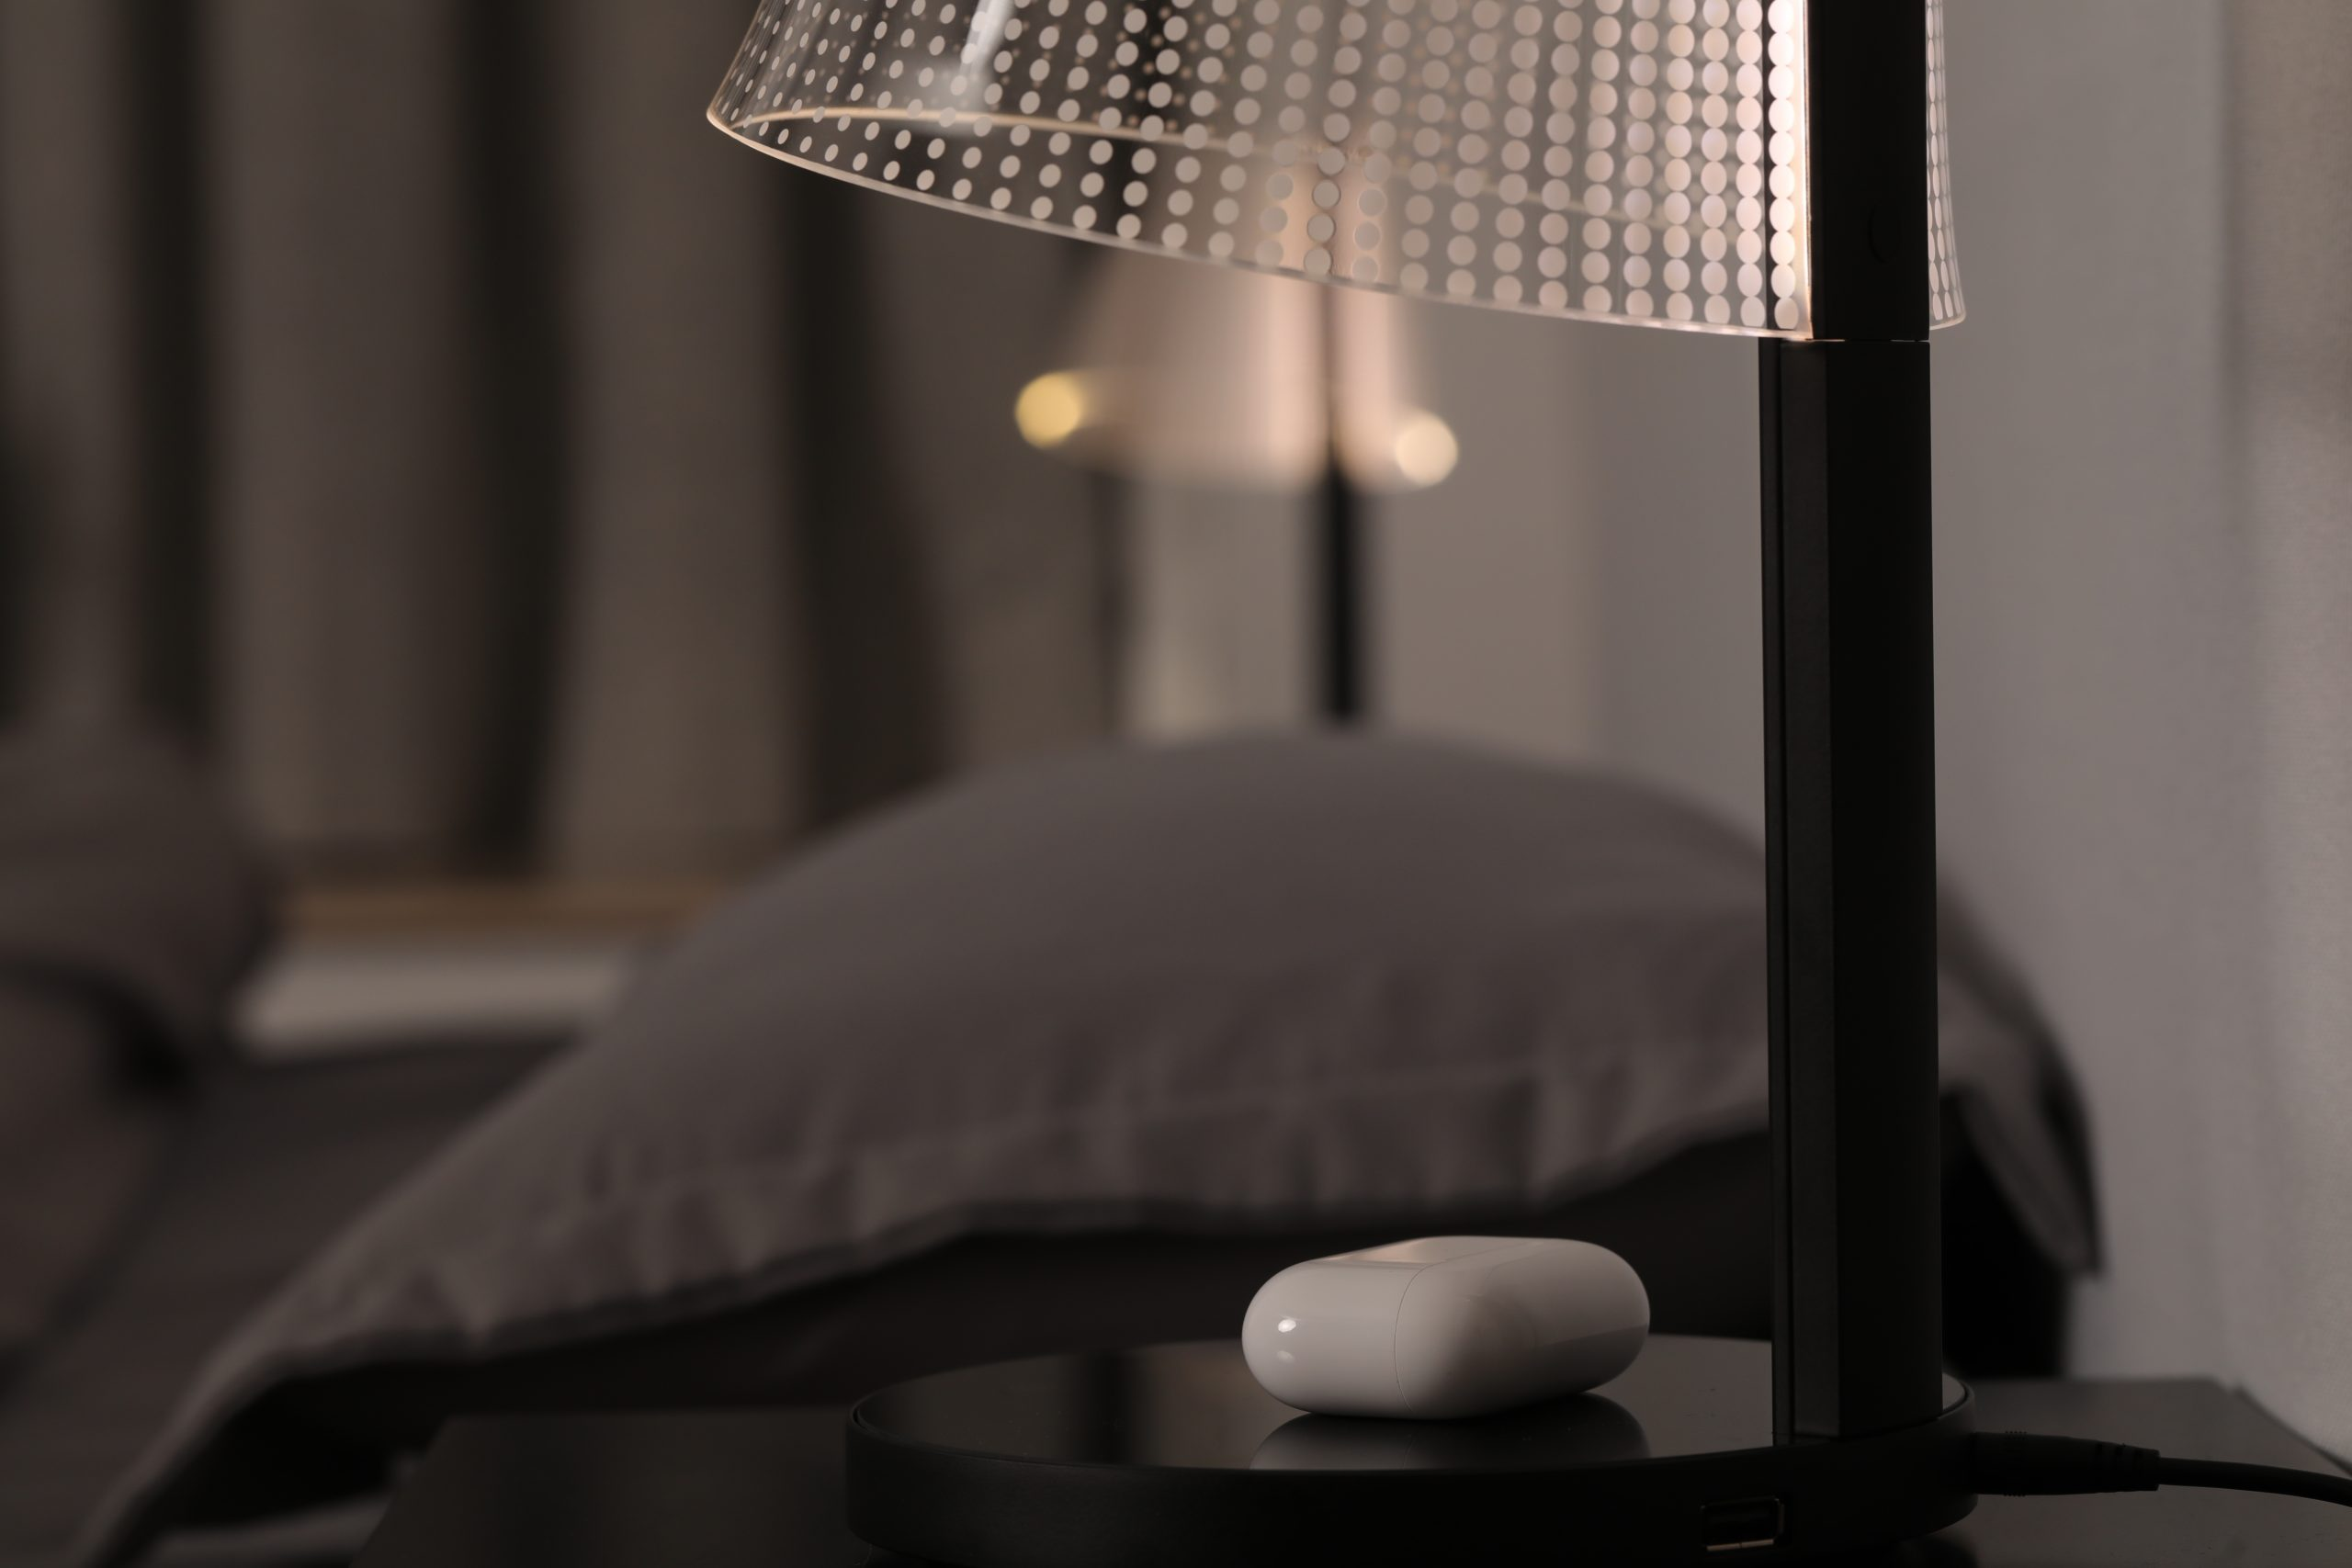 Which is best Invisible Light Source Design for small spaces?